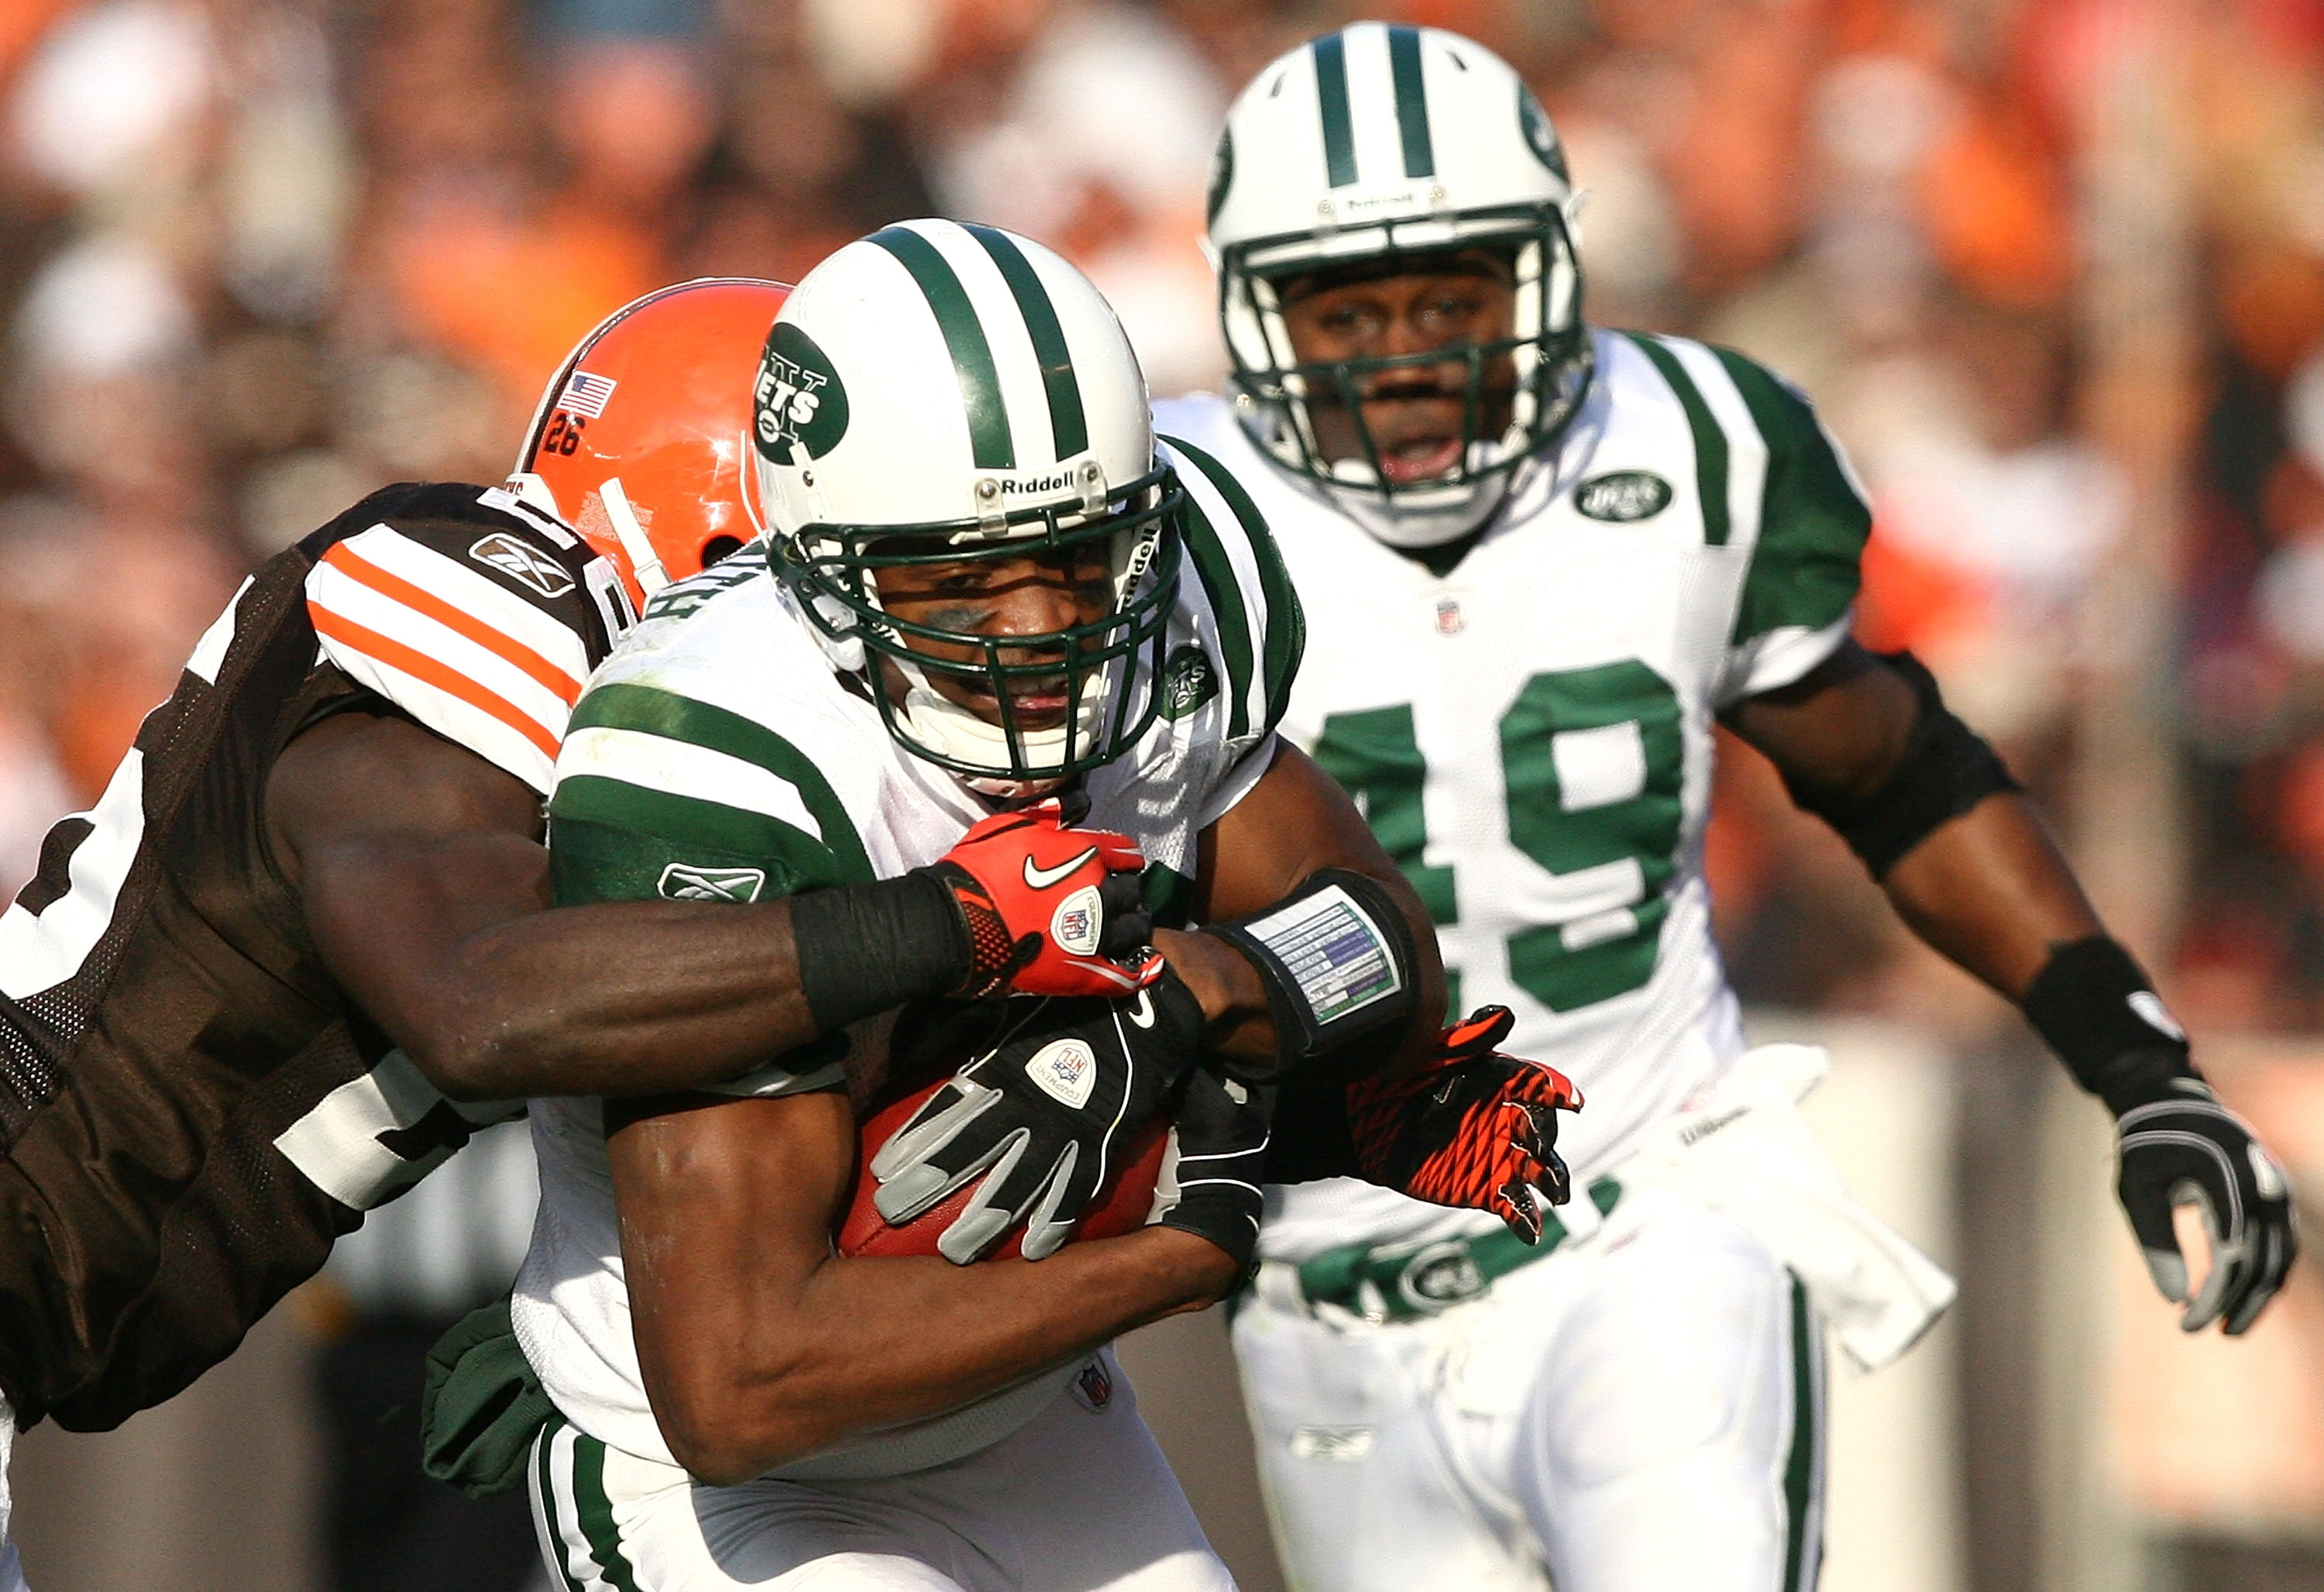 CLEVELAND - NOVEMBER 14:  Wide receiver Brad Smith #16 of the New York Jets is hit by defensive back Abram Elam #26 of the Cleveland Browns as Tony Richardson #49 looks on at Cleveland Browns Stadium on November 14, 2010 in Cleveland, Ohio.  (Photo by Mat